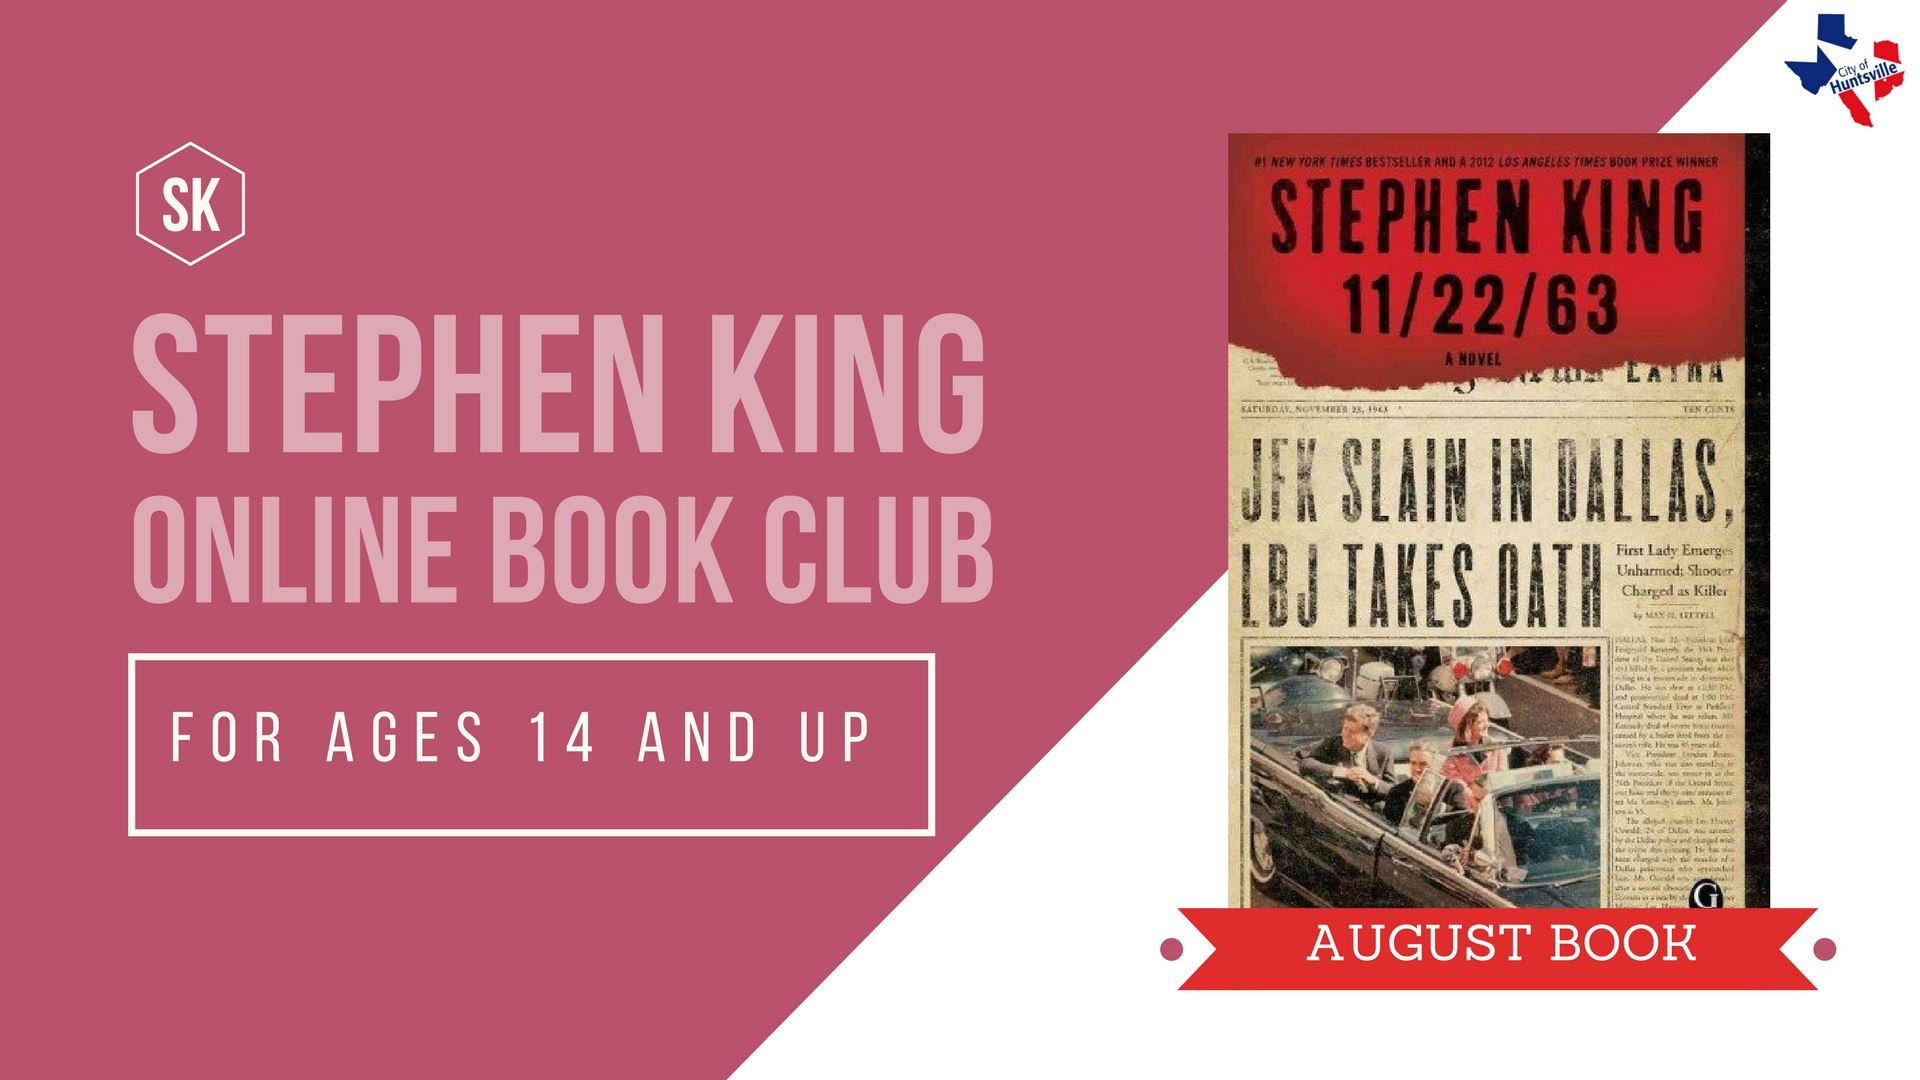 STEPHEN KING AUGUST